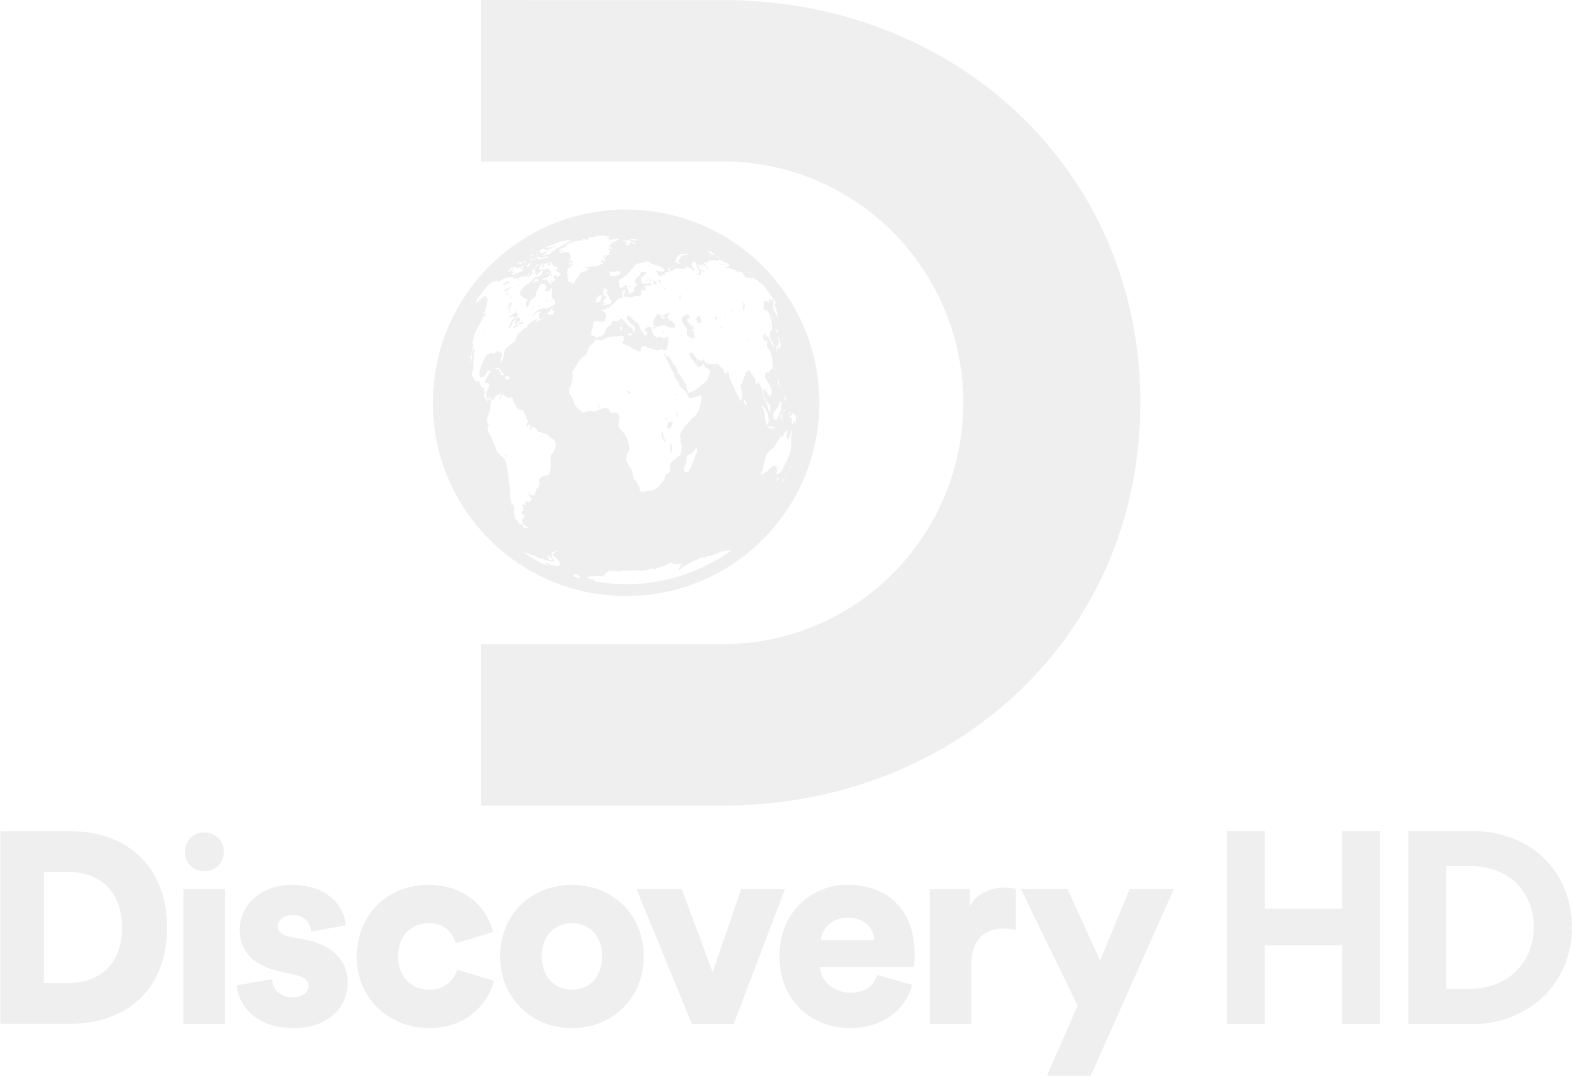 Discovery TV